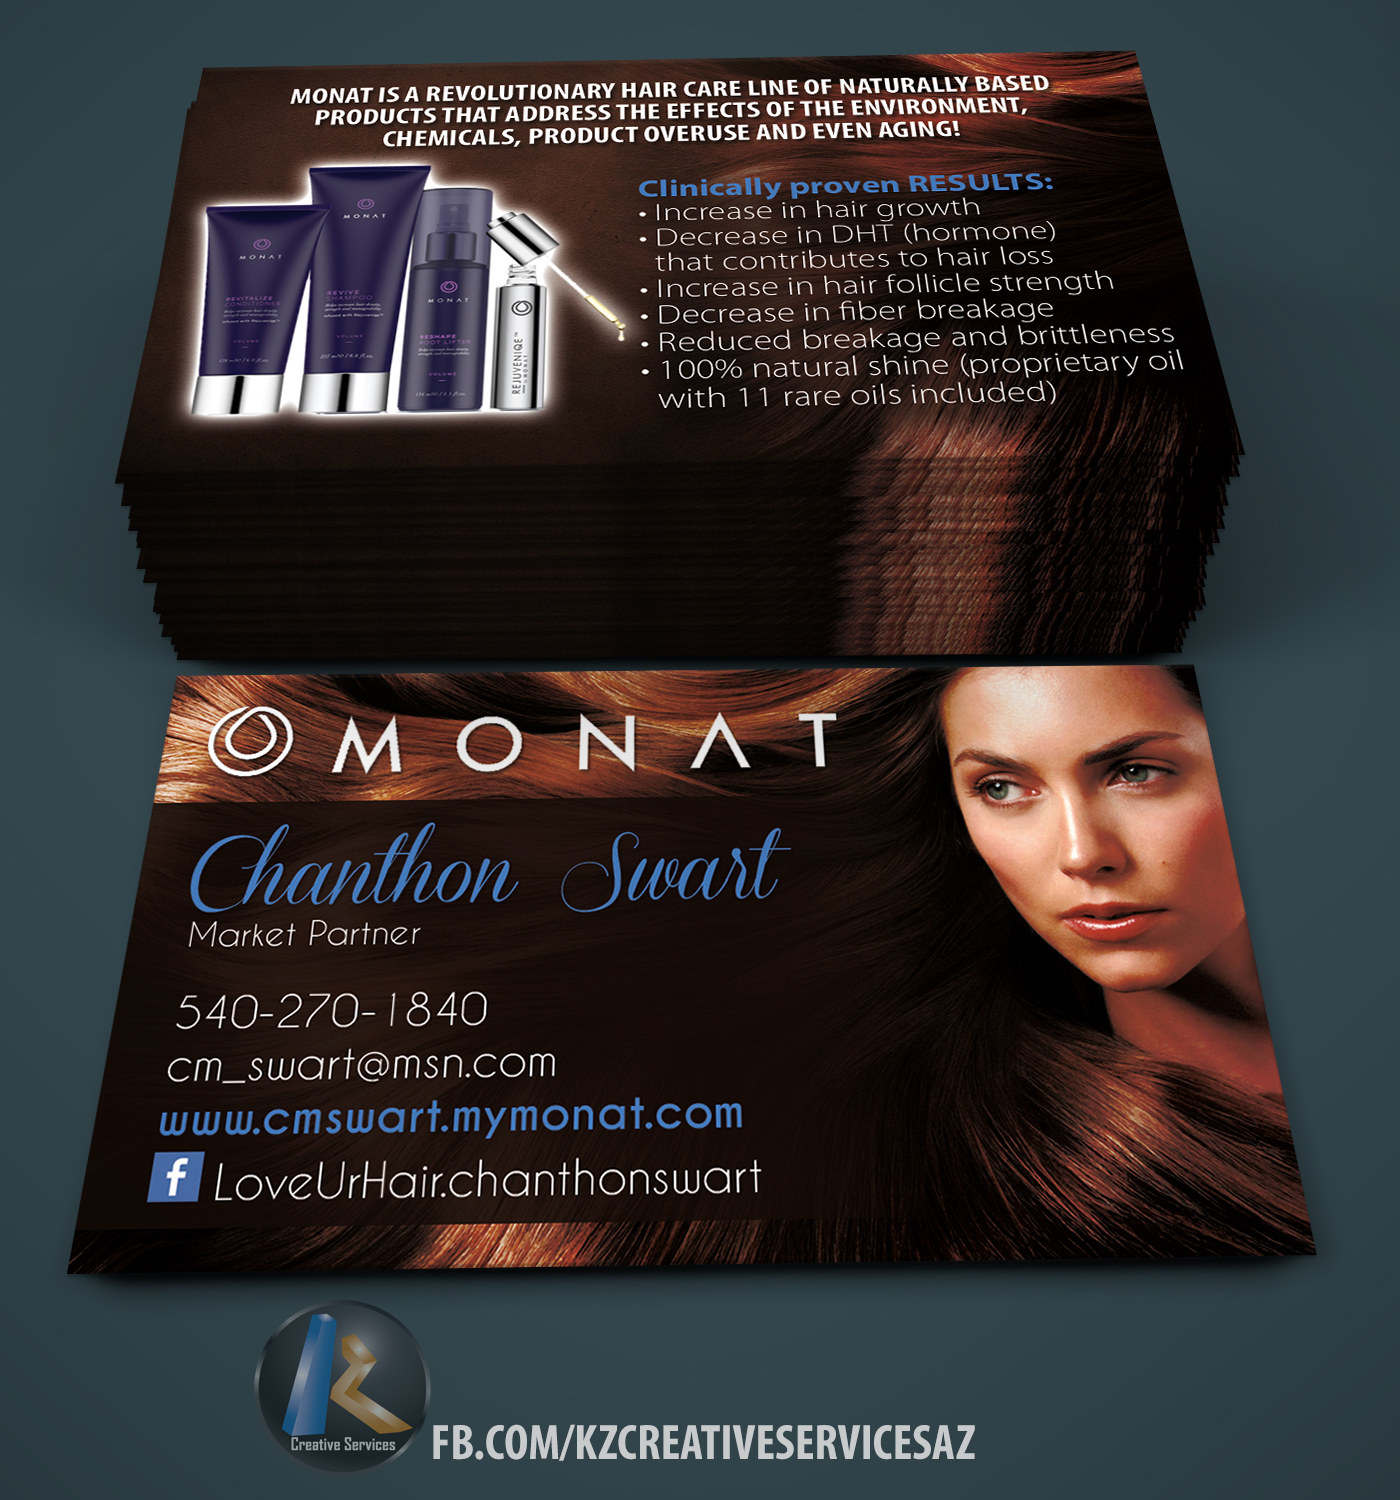 Monat business cards style 1 kz creative services online store monat business cards style 1 reheart Image collections